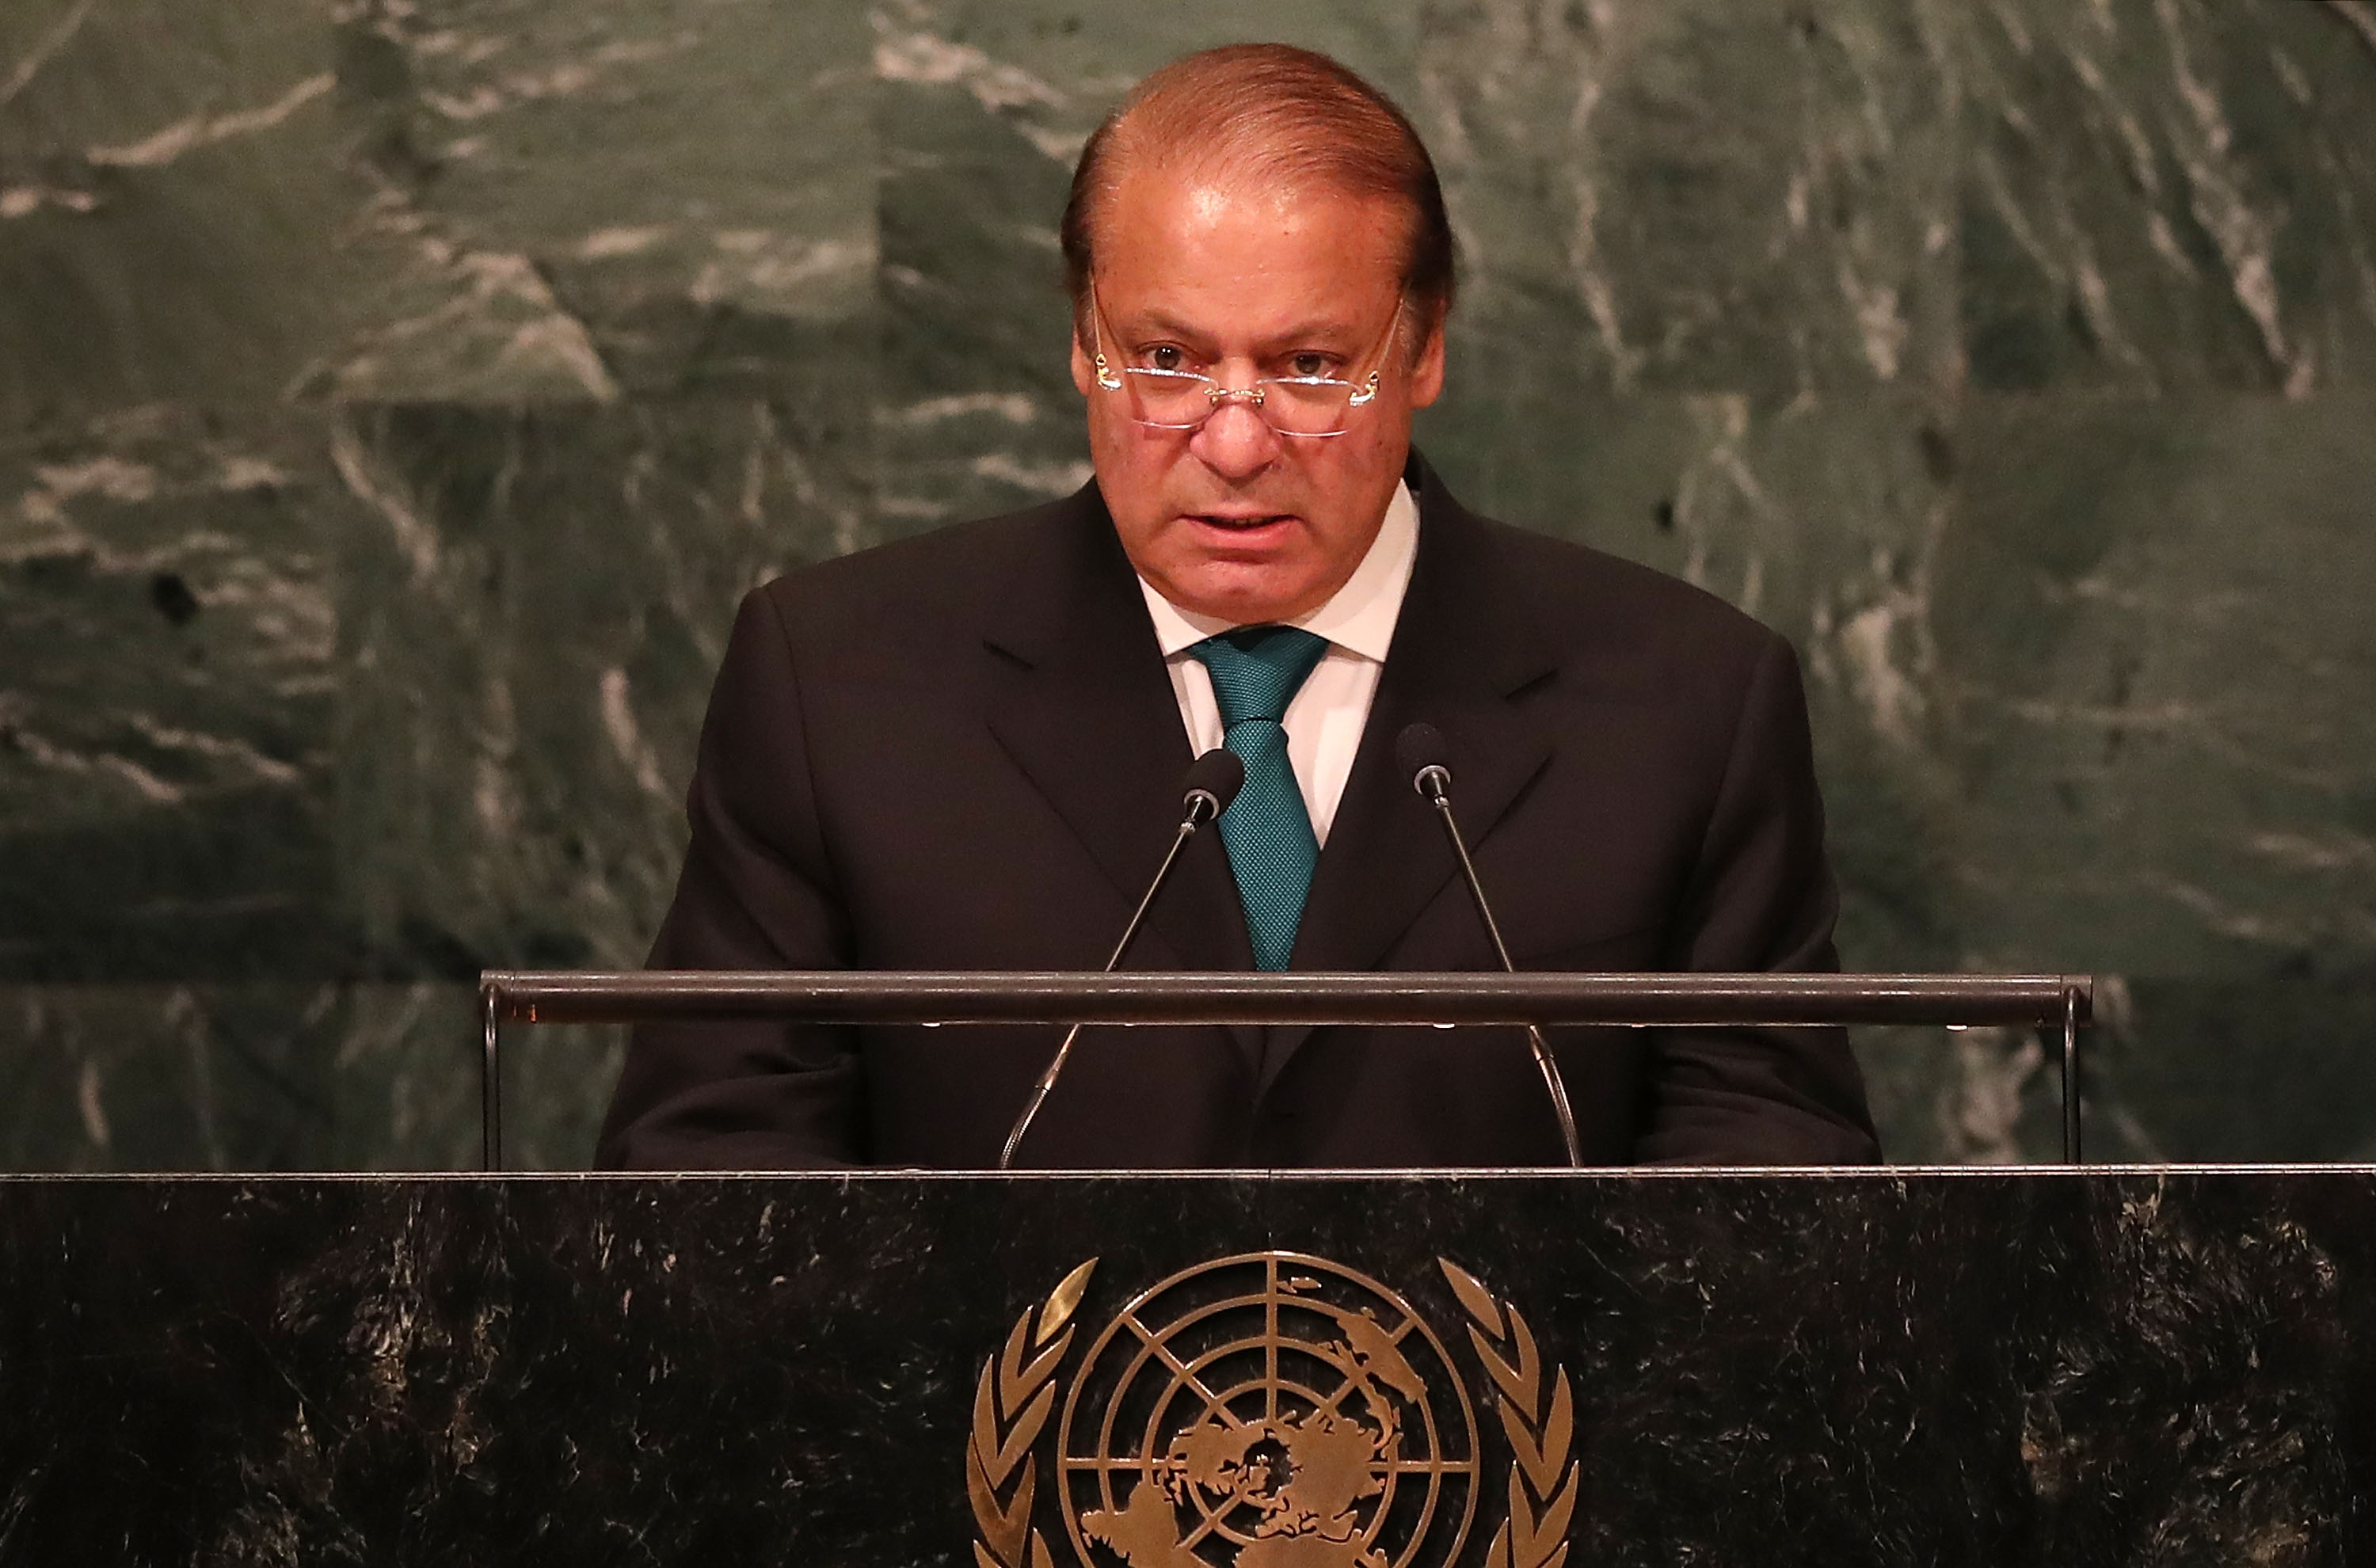 Pakistan's Prime Minister Nawaz Sharif addresses the General Assembly at the United Nations on September 21, 2016 in New York City.